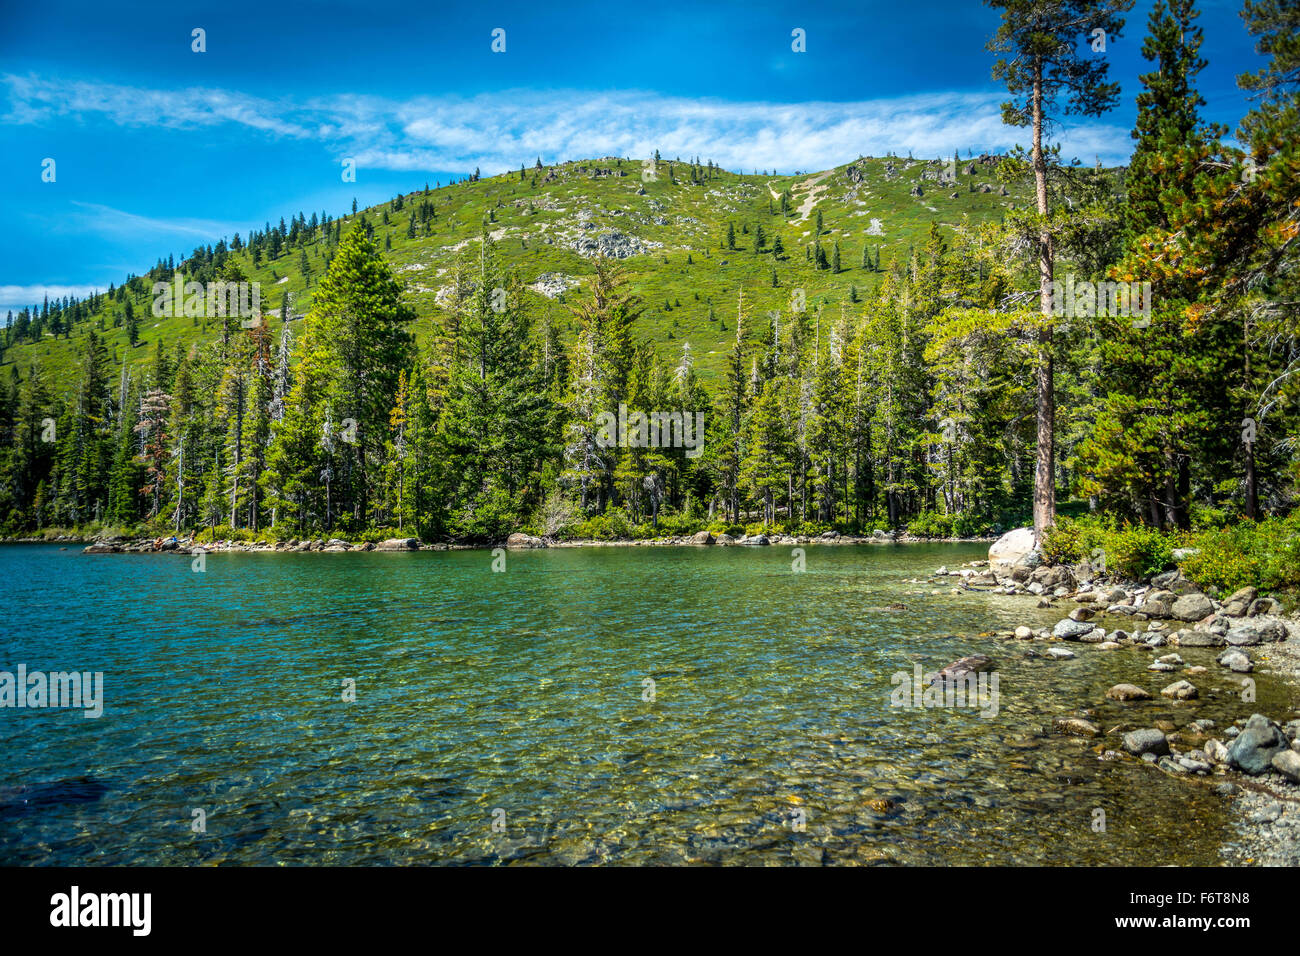 Castle Lake is a glacial lake located in northern California along the eastern edge of the Klamath Mountains, in - Stock Image